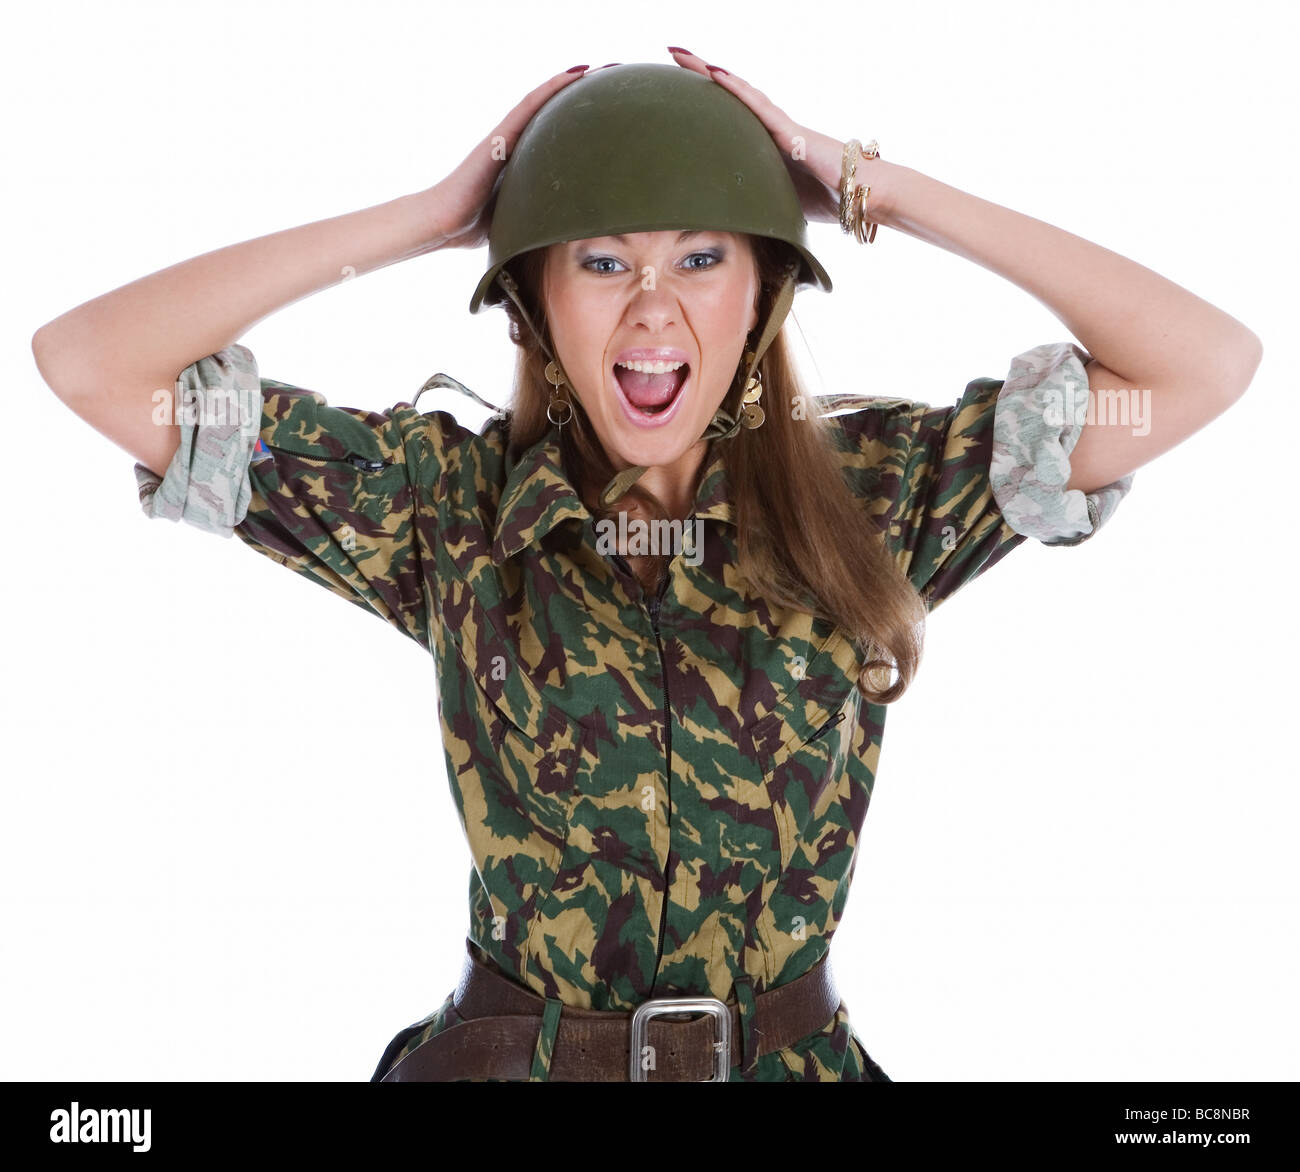 woman in a steel helmet on white background - Stock Image